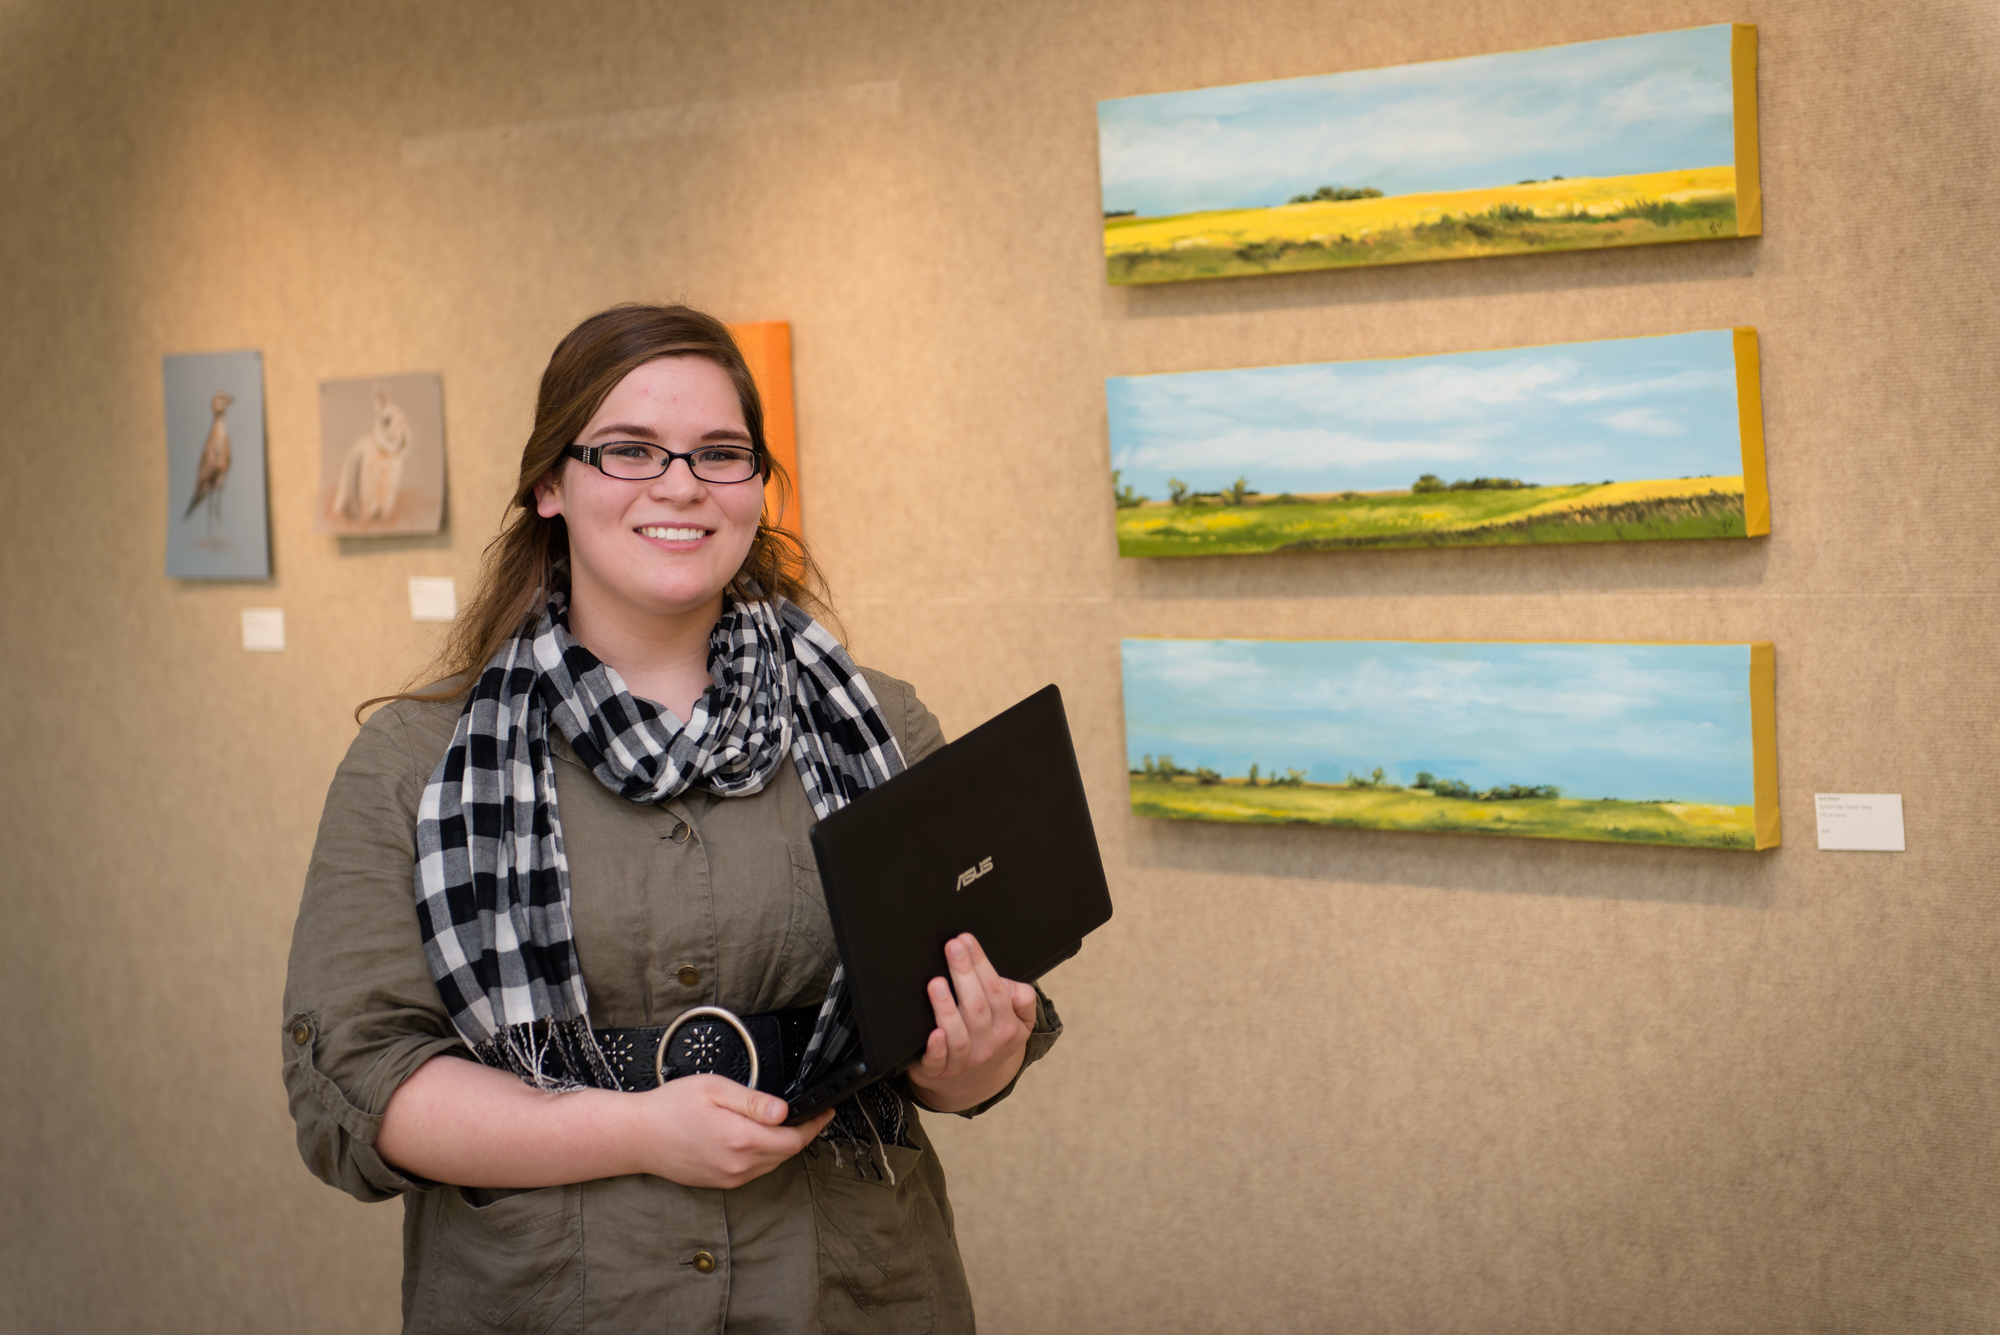 Aliza Rux '17 employs interdisciplinary skills as curator for the Invitational Alumni Art Exhibit in Concordia's Cyrus M. Running Gallery this fall.